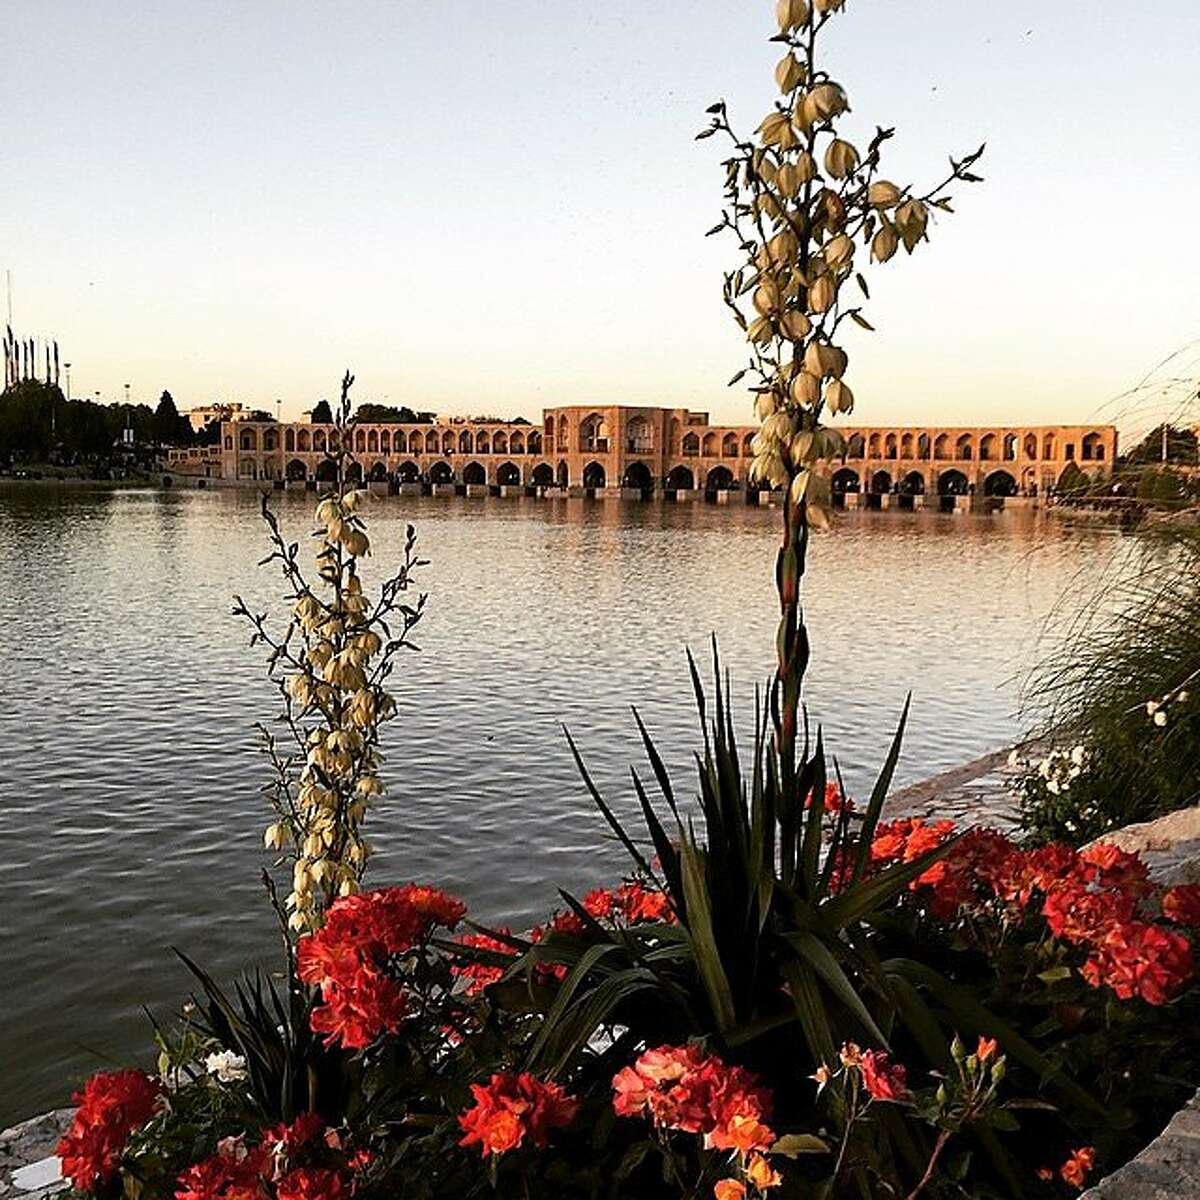 The Zayanderud River in Esfahan, the largest river in central Iran, features several historical bridges spanning it.